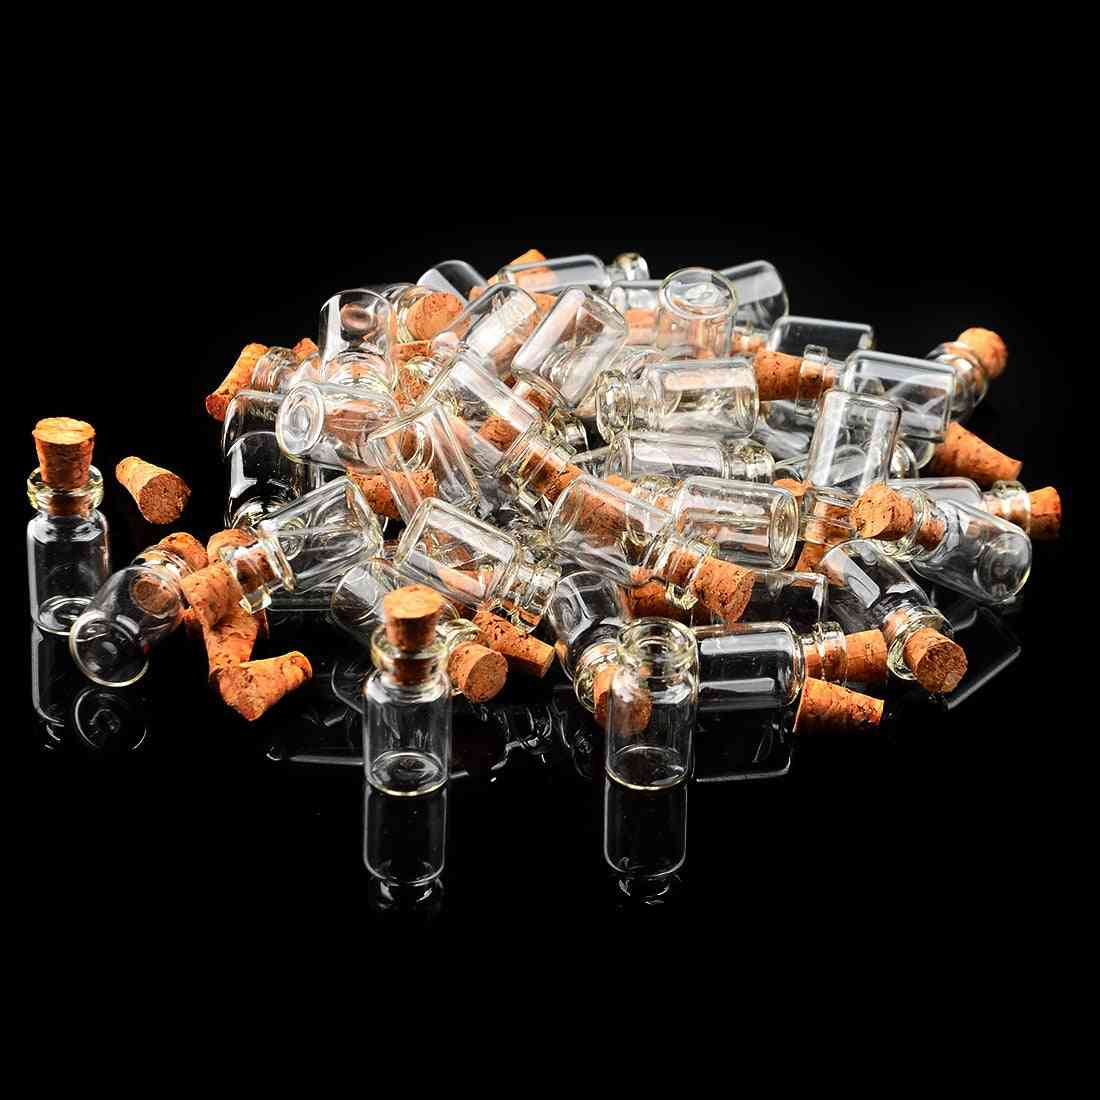 Small Clear Glass, Wish Bottle, Vials Empty Jars With Cork Stopper (50pcs)